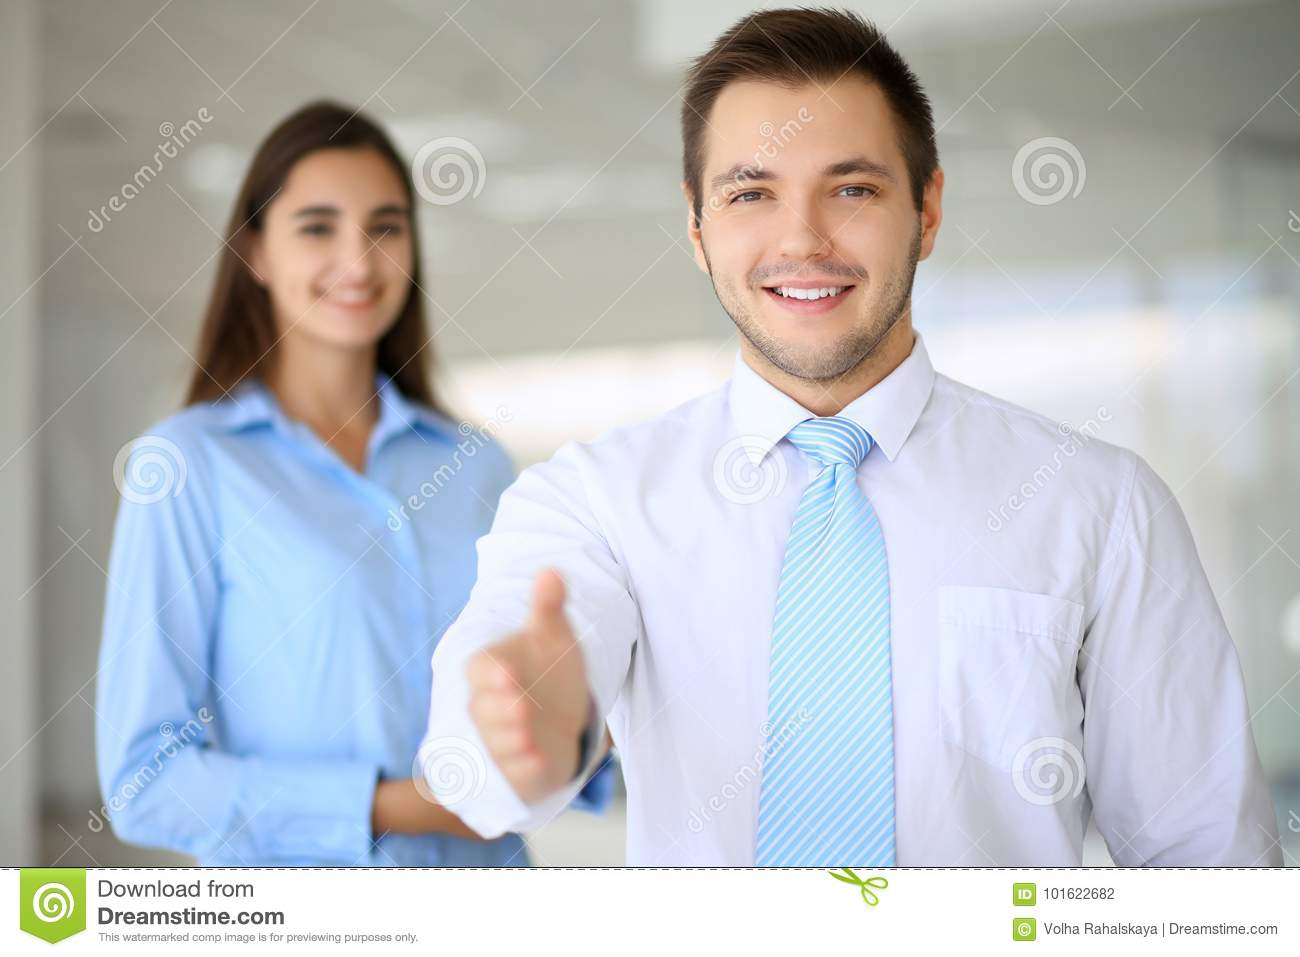 Smiling businessman in office is ready for shaking hands